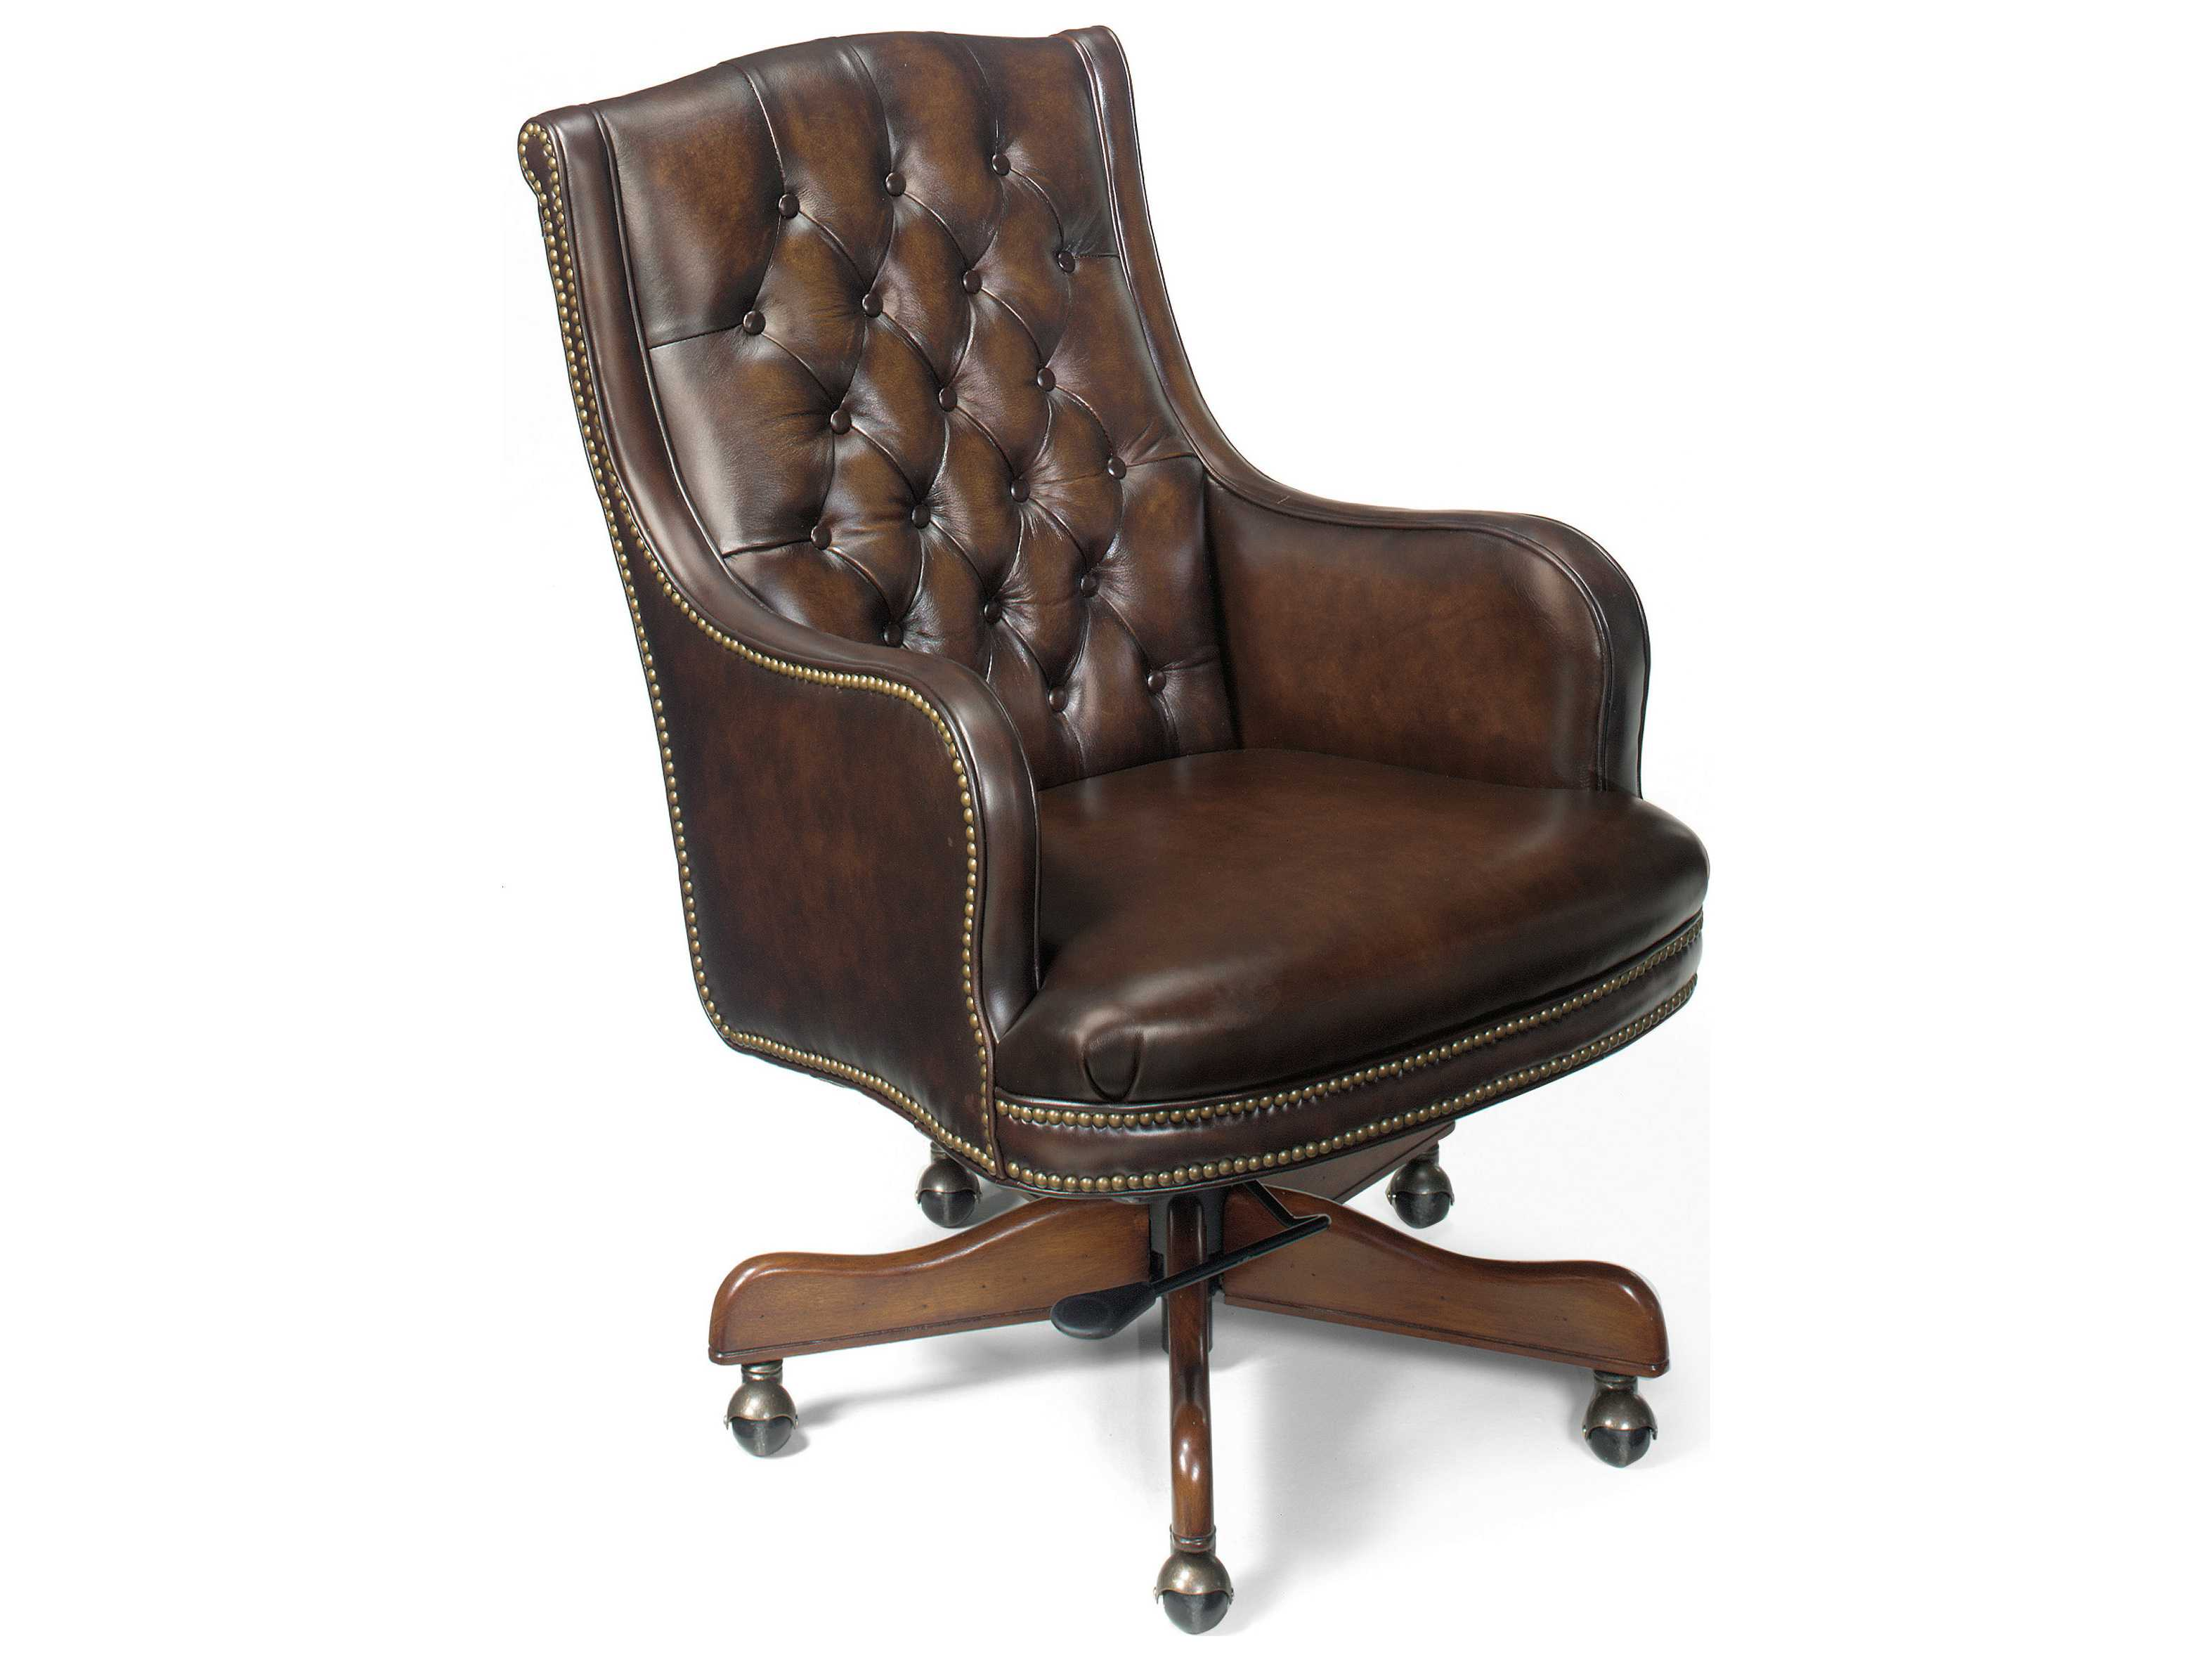 Hooker Chairs Hooker Furniture James River Manchester Dark Wood